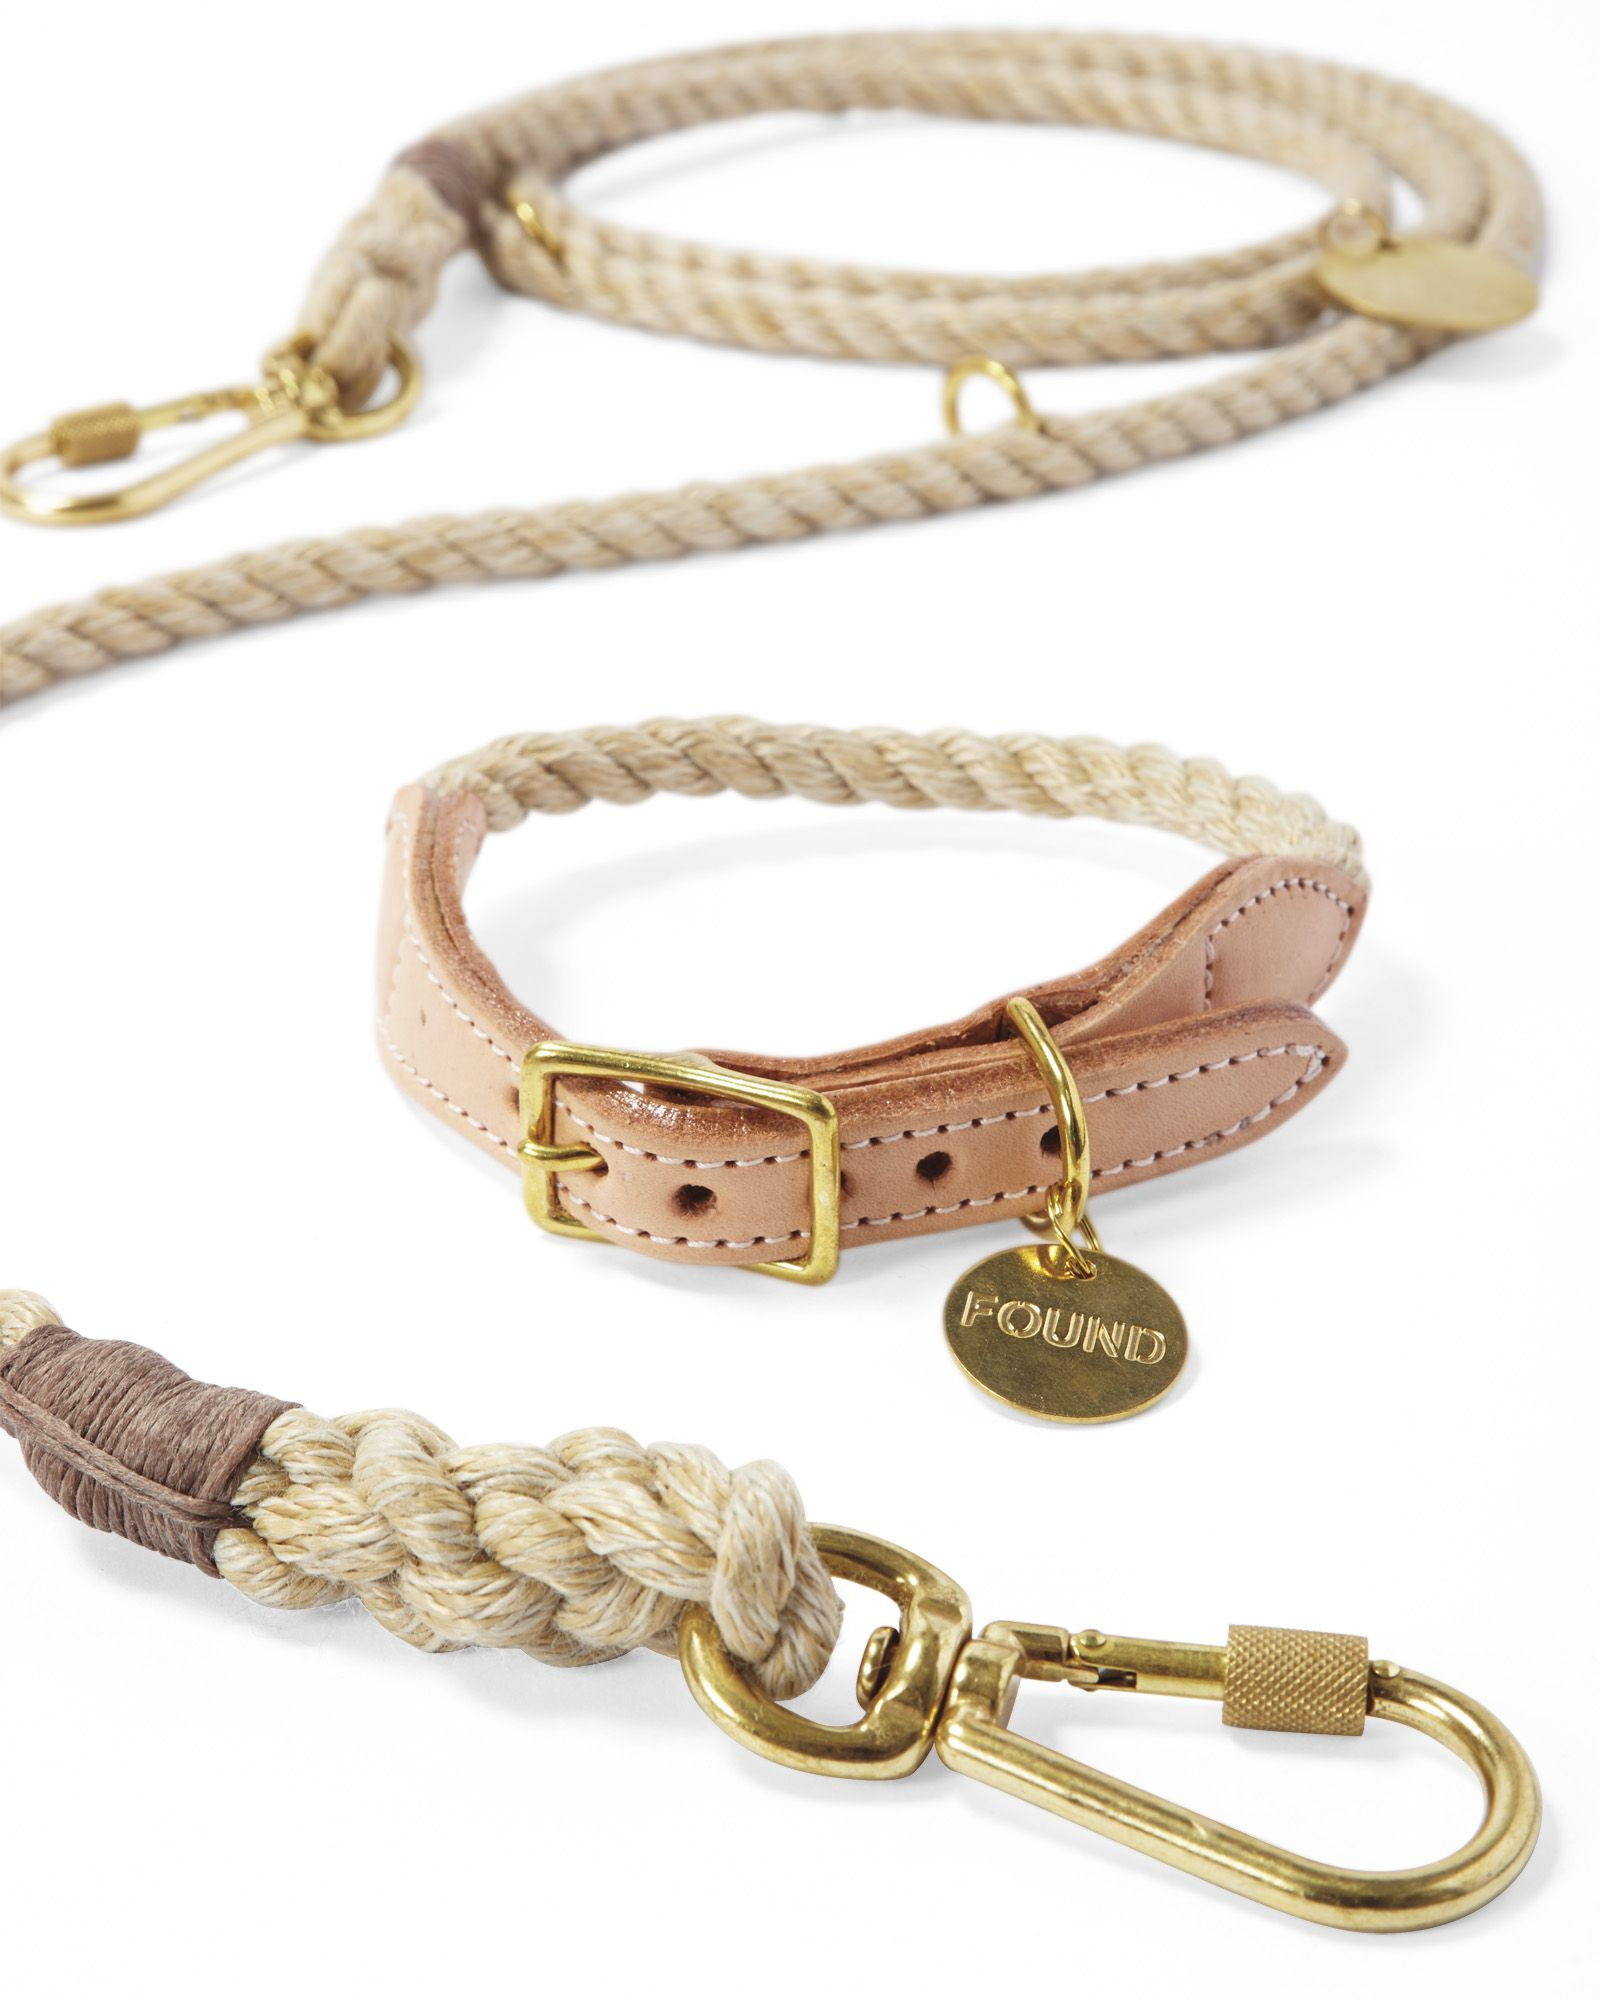 Handcrafted With Marine Grade Rope And Embellished With Brass